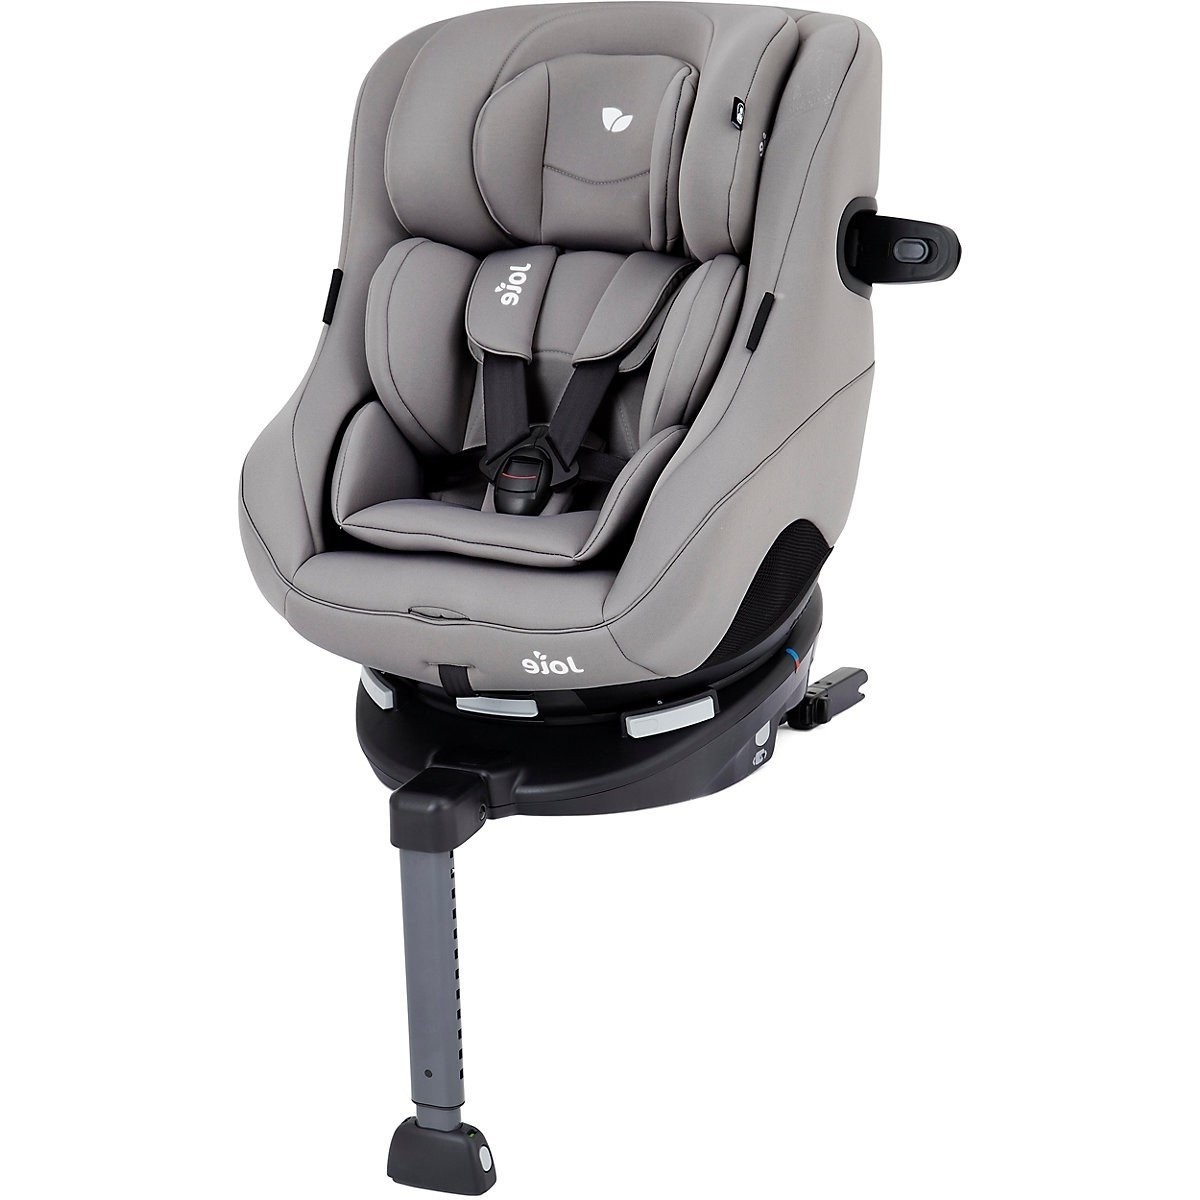 SPIN 360 GT GRAY FLANNEL - Kico Baby Center